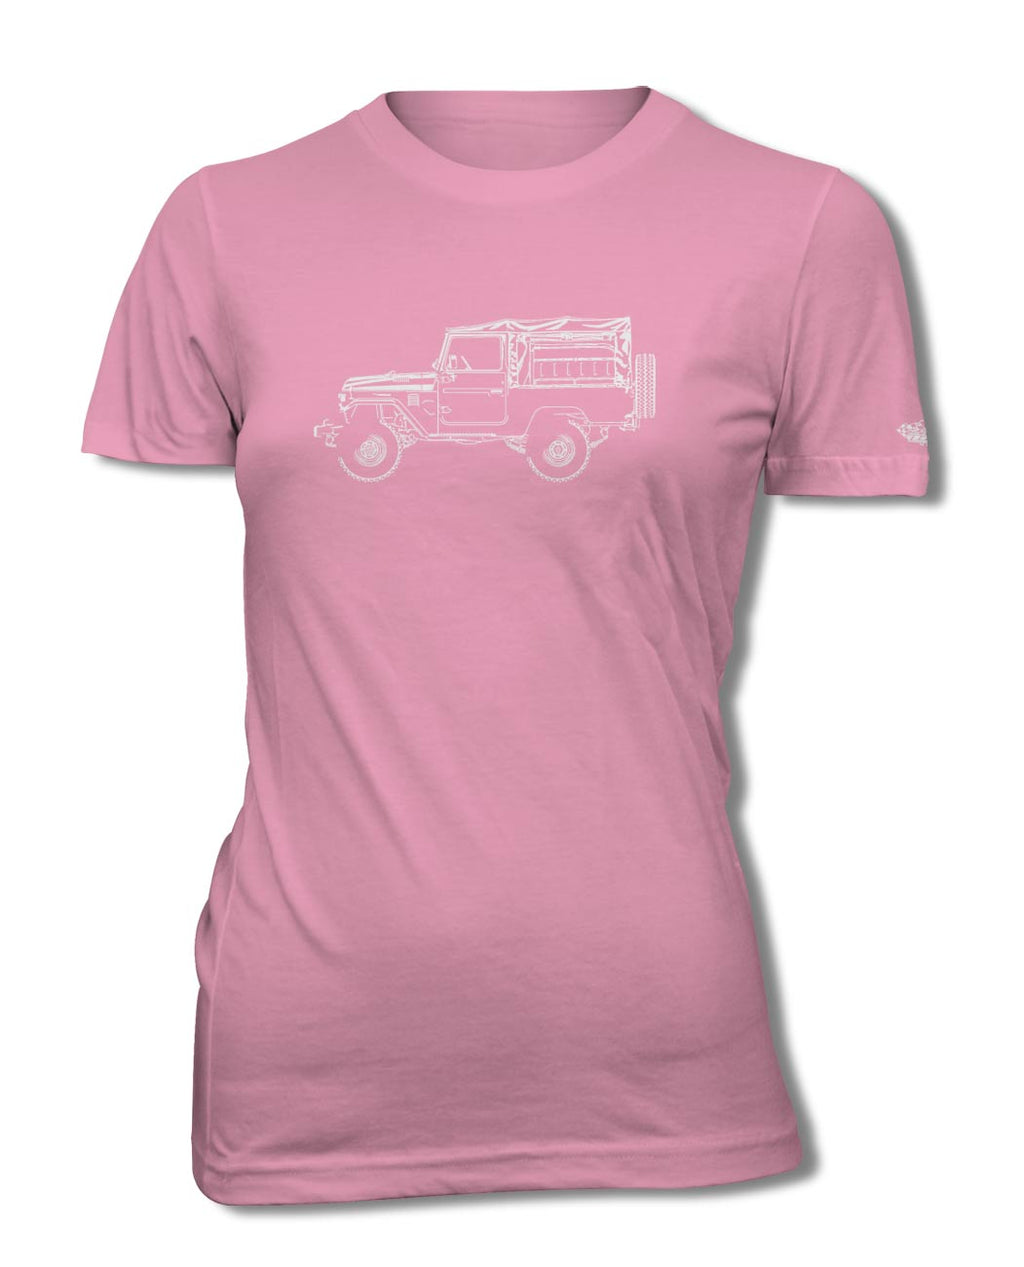 Toyota BJ43 FJ43 Land Cruiser 4x4 T-Shirt - Women - Side View